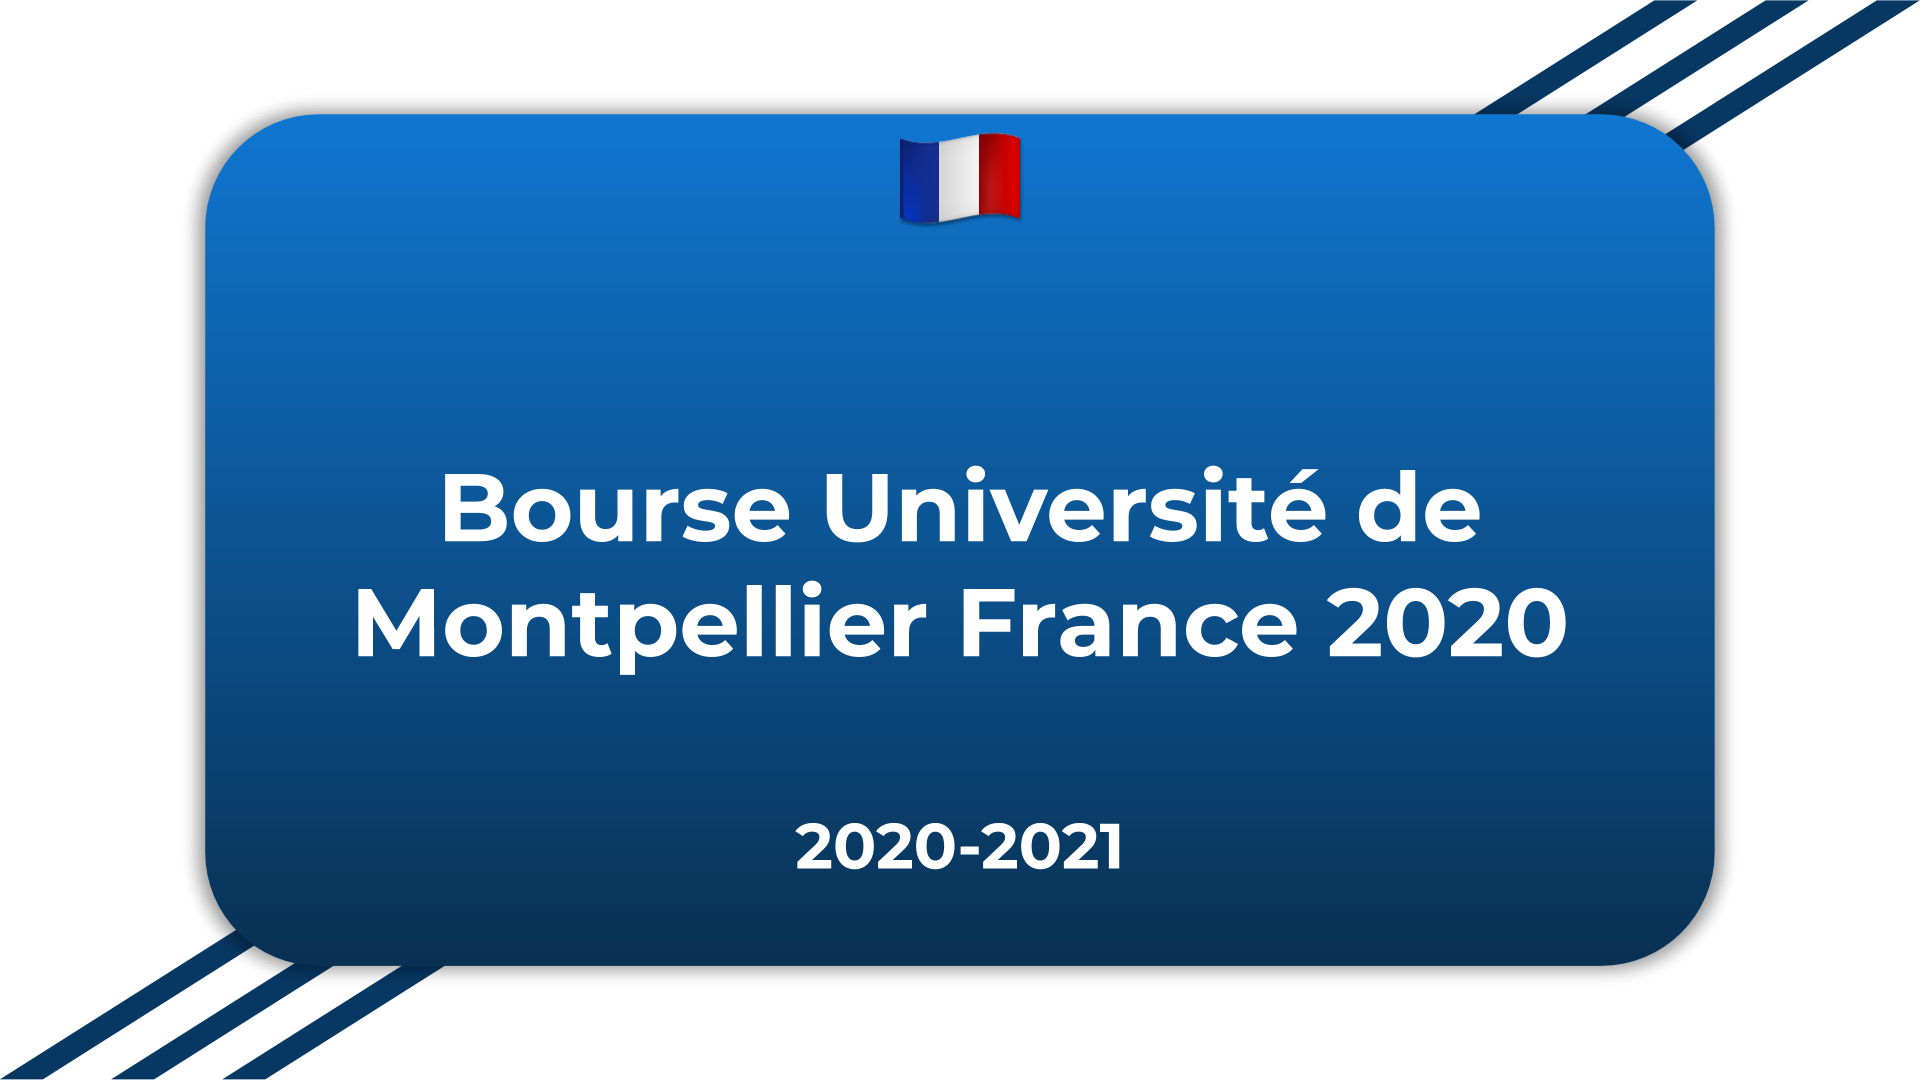 Bourse Université de Montpellier France 2020